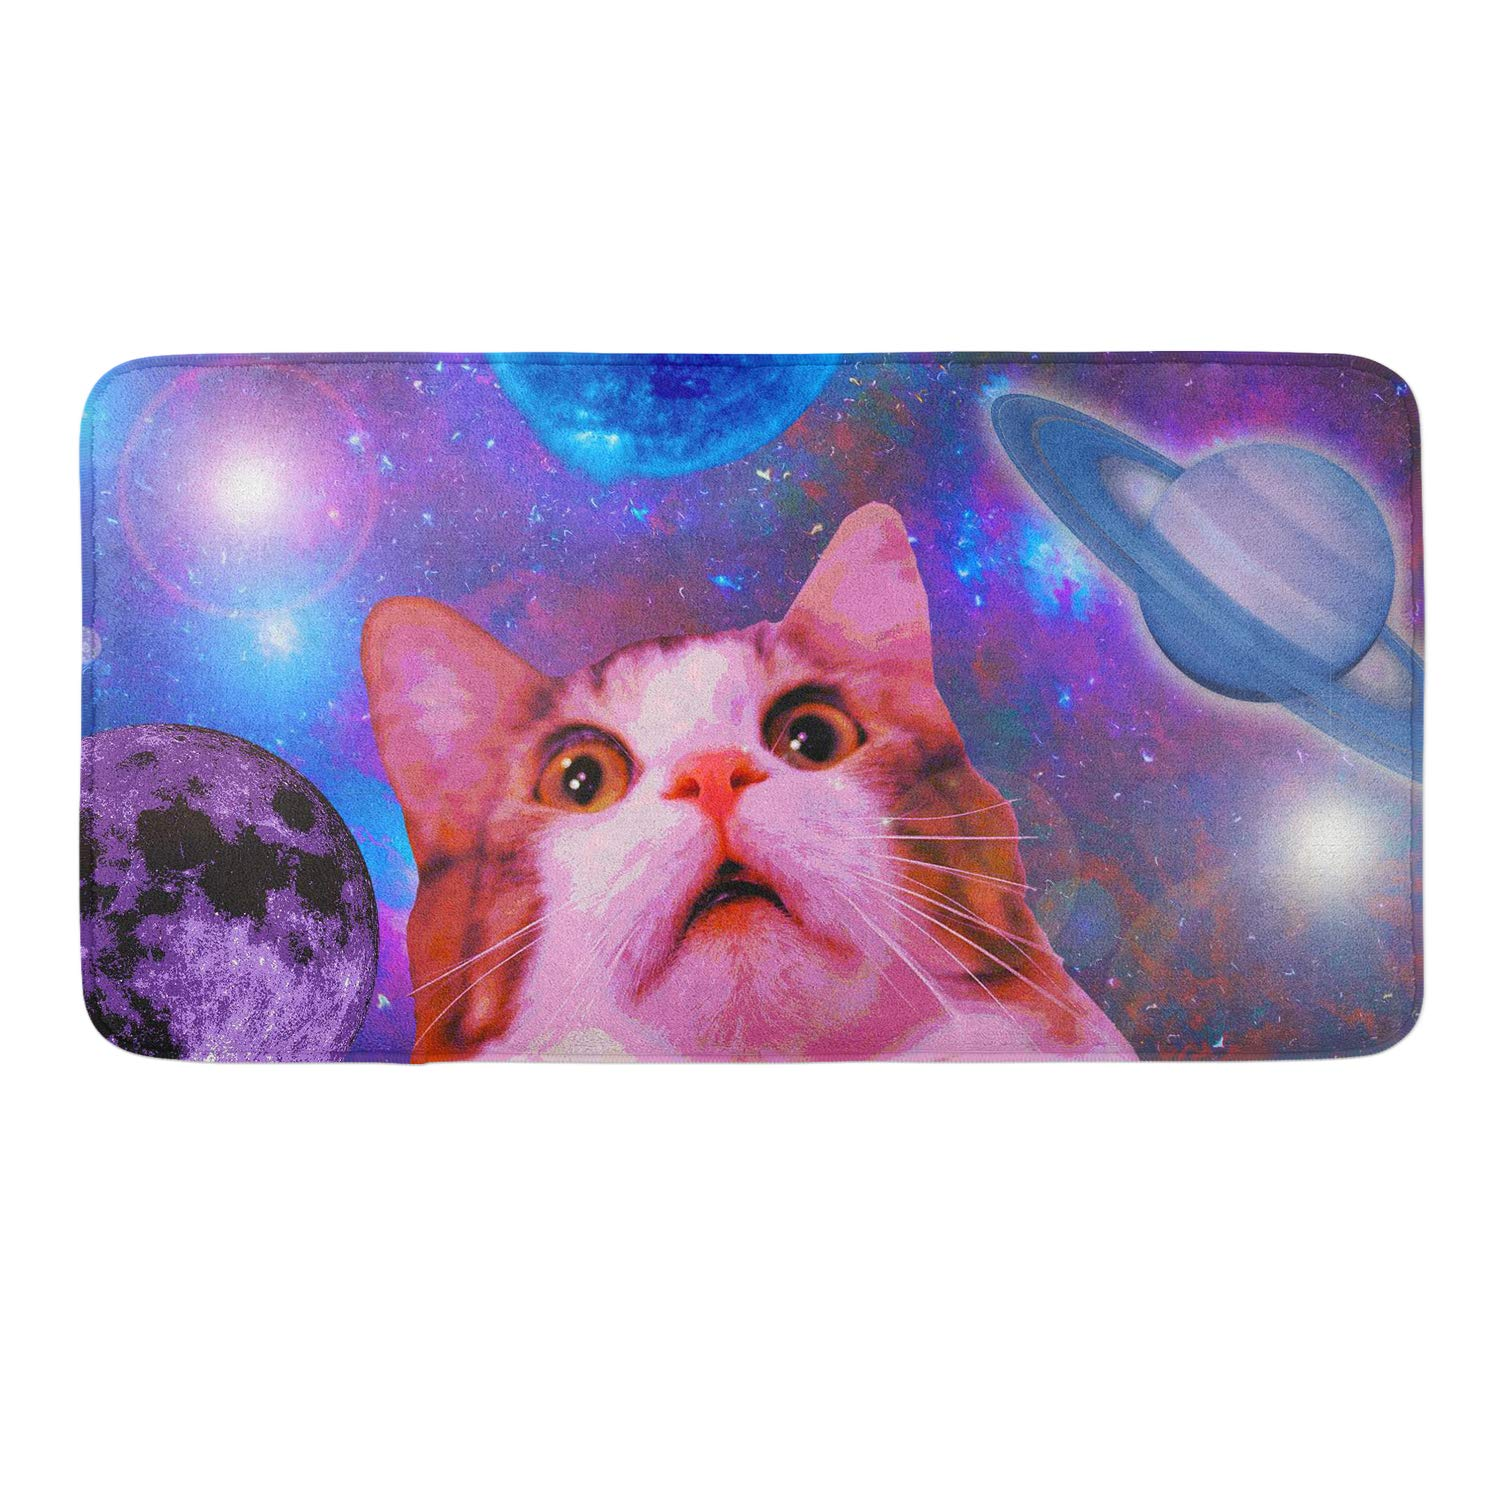 Non-Slip Memory Foam Bath Rugs, 3D Print Space Amazing Cat - 18 x 36 Inch, Extra Absorbent,Soft,Duarable and Quick-Dry Shaggy Rugs